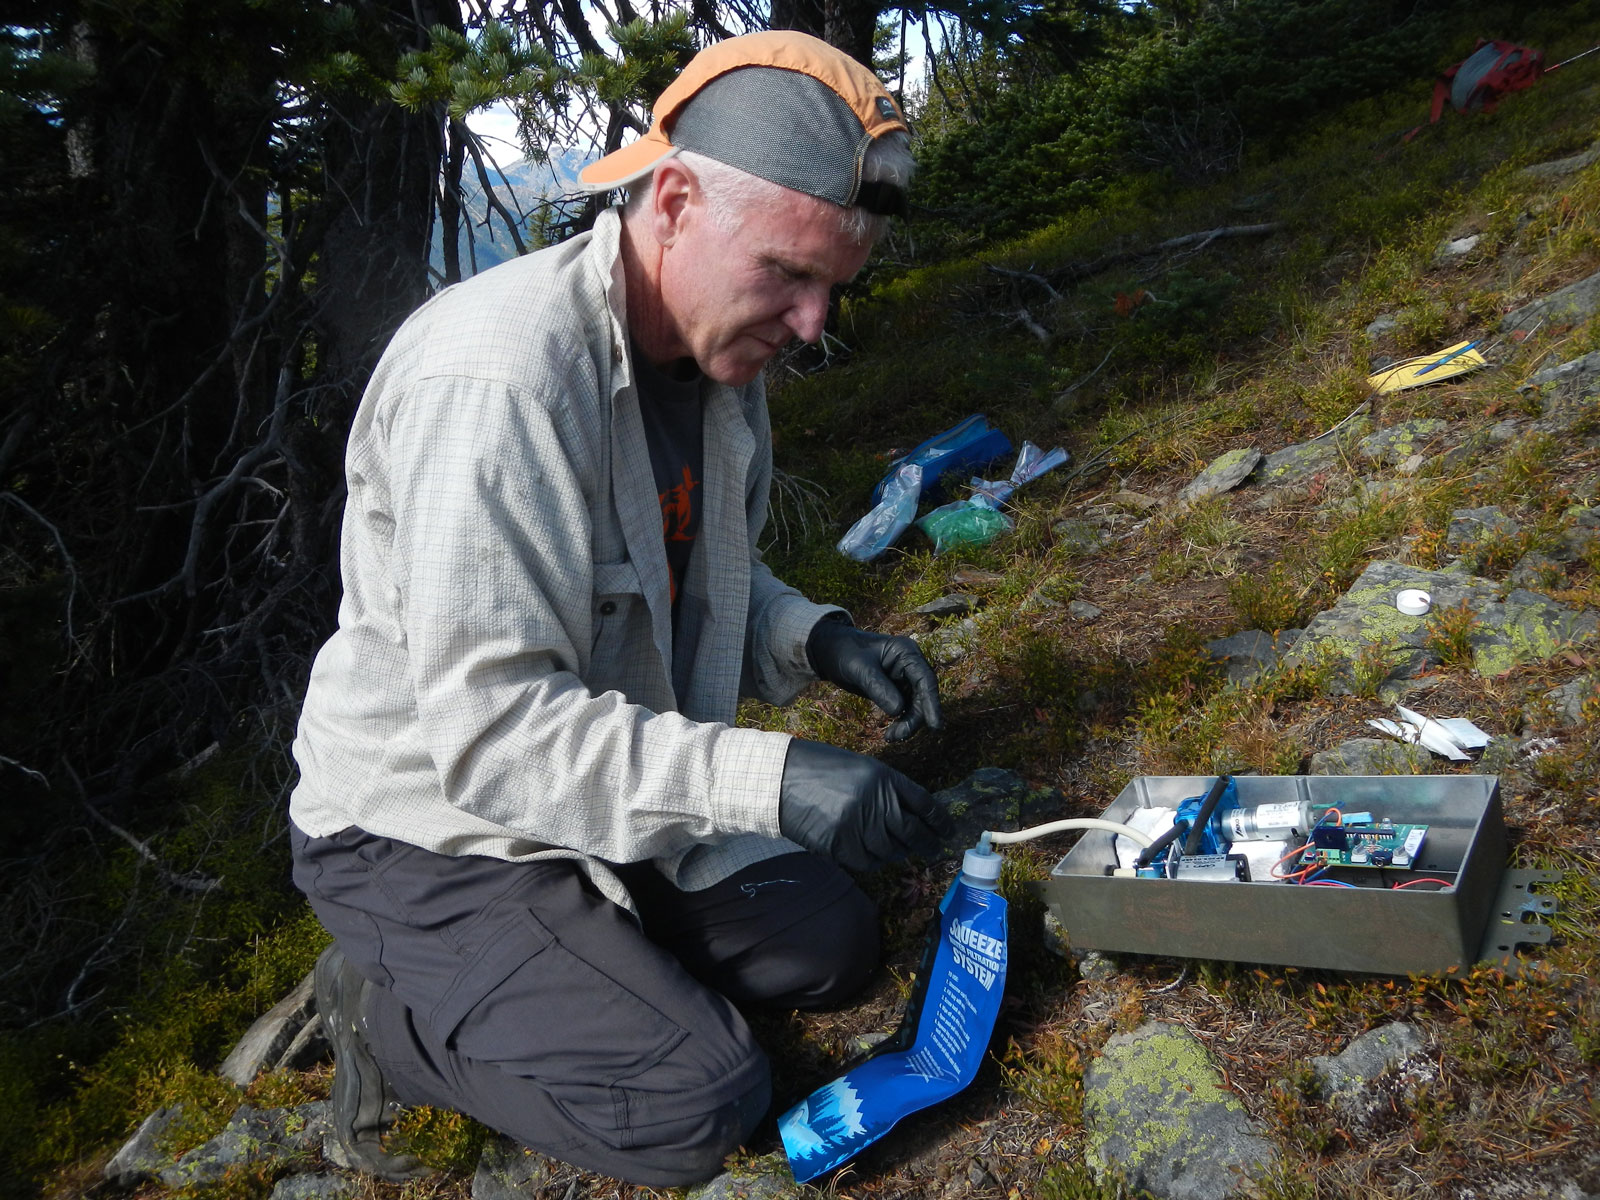 Robert long prepares an automated scent dispenser to attract wolverines during the winter months when the Cascades are hard for researchers to access. The dispenser will be hung high in a tree above the snow line. Photo by Paula MacKay.